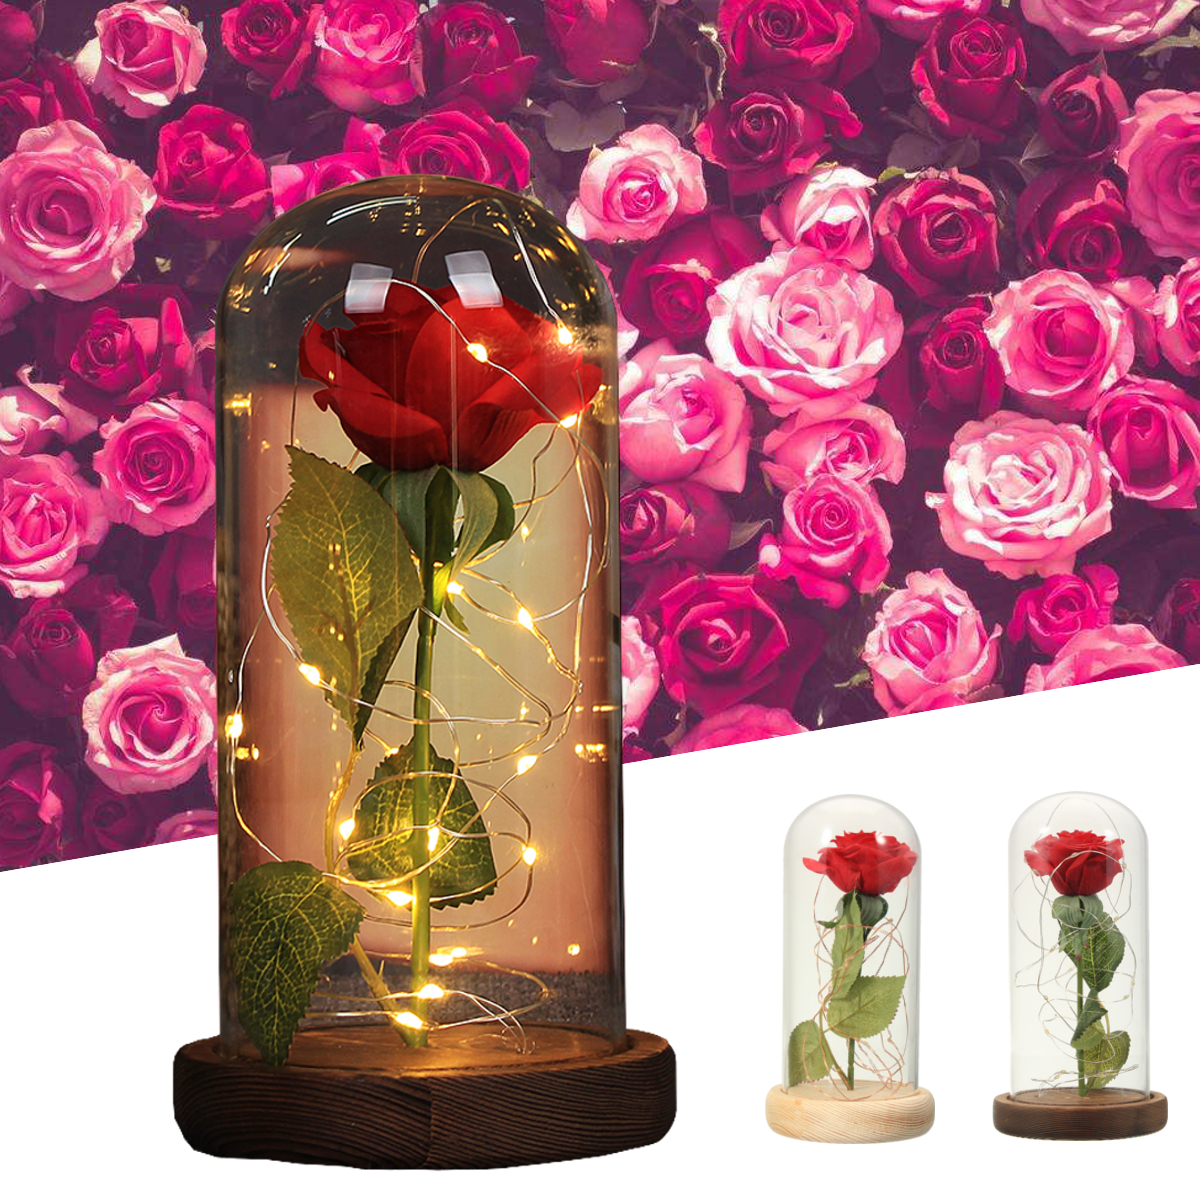 Red Rose Lights Decorations Beauty Enchanted Preserved Red Fresh Rose Glass Cover with LED Light